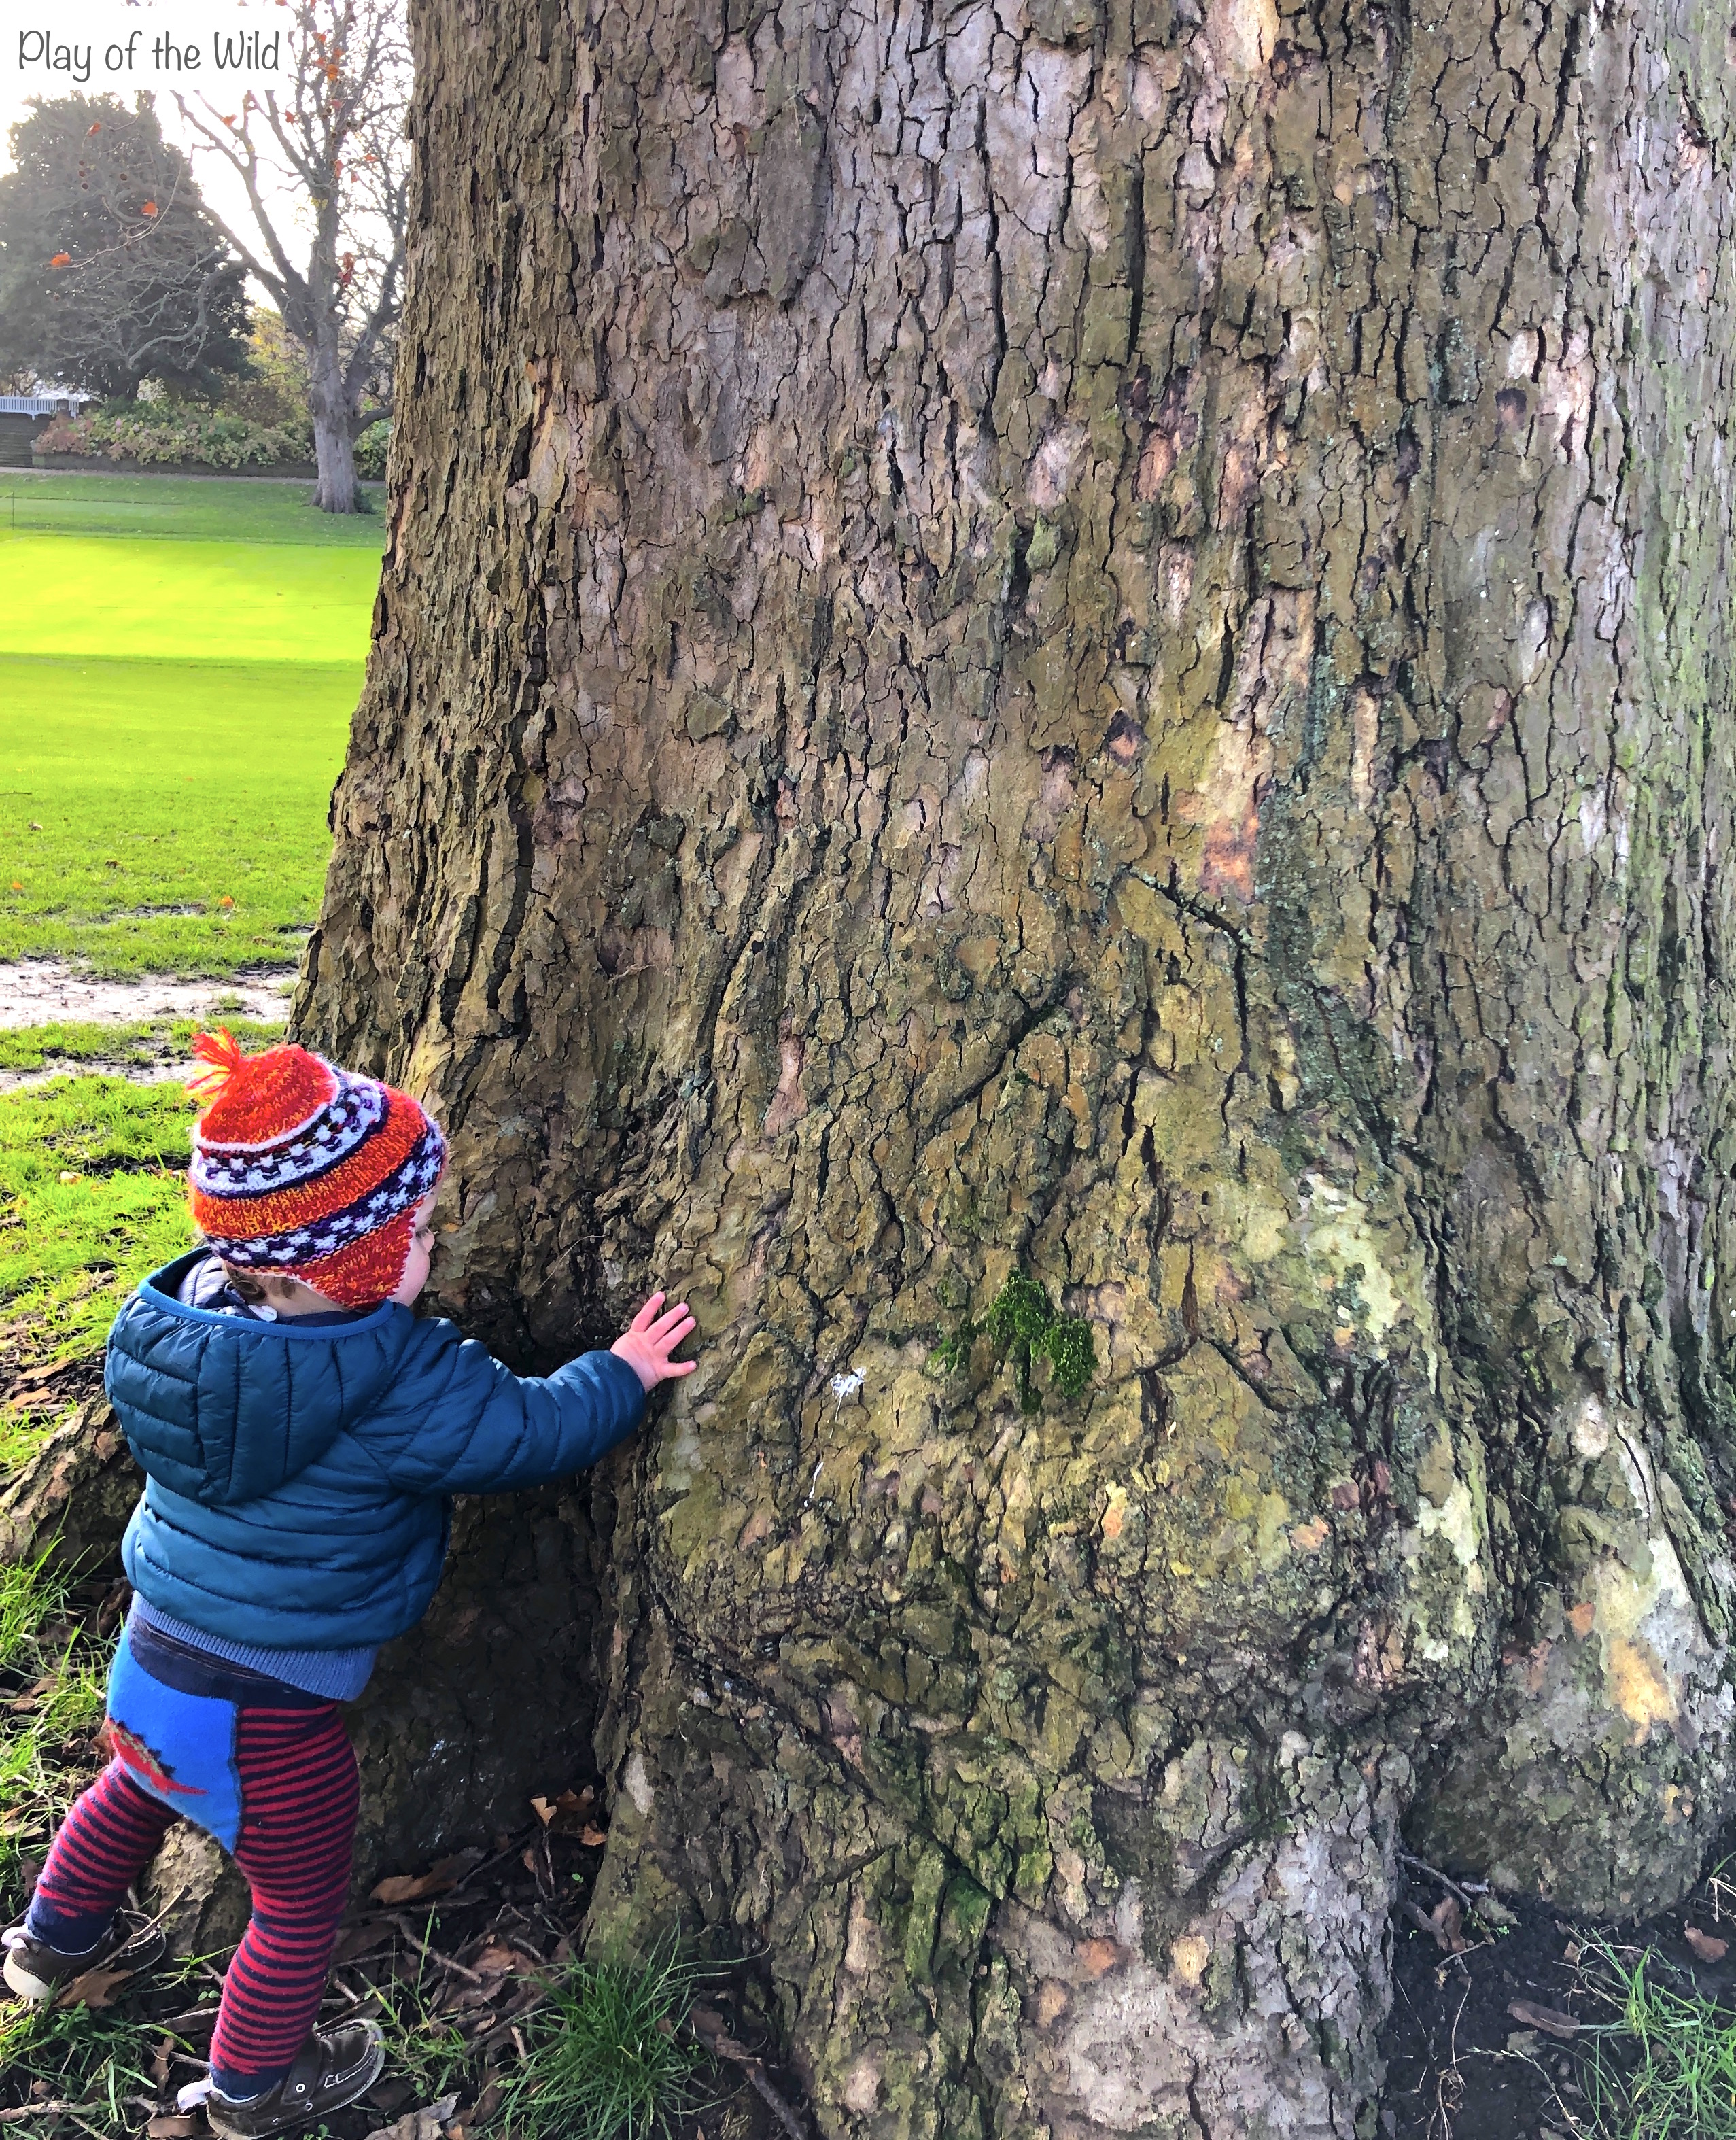 Learning outdoors with kids